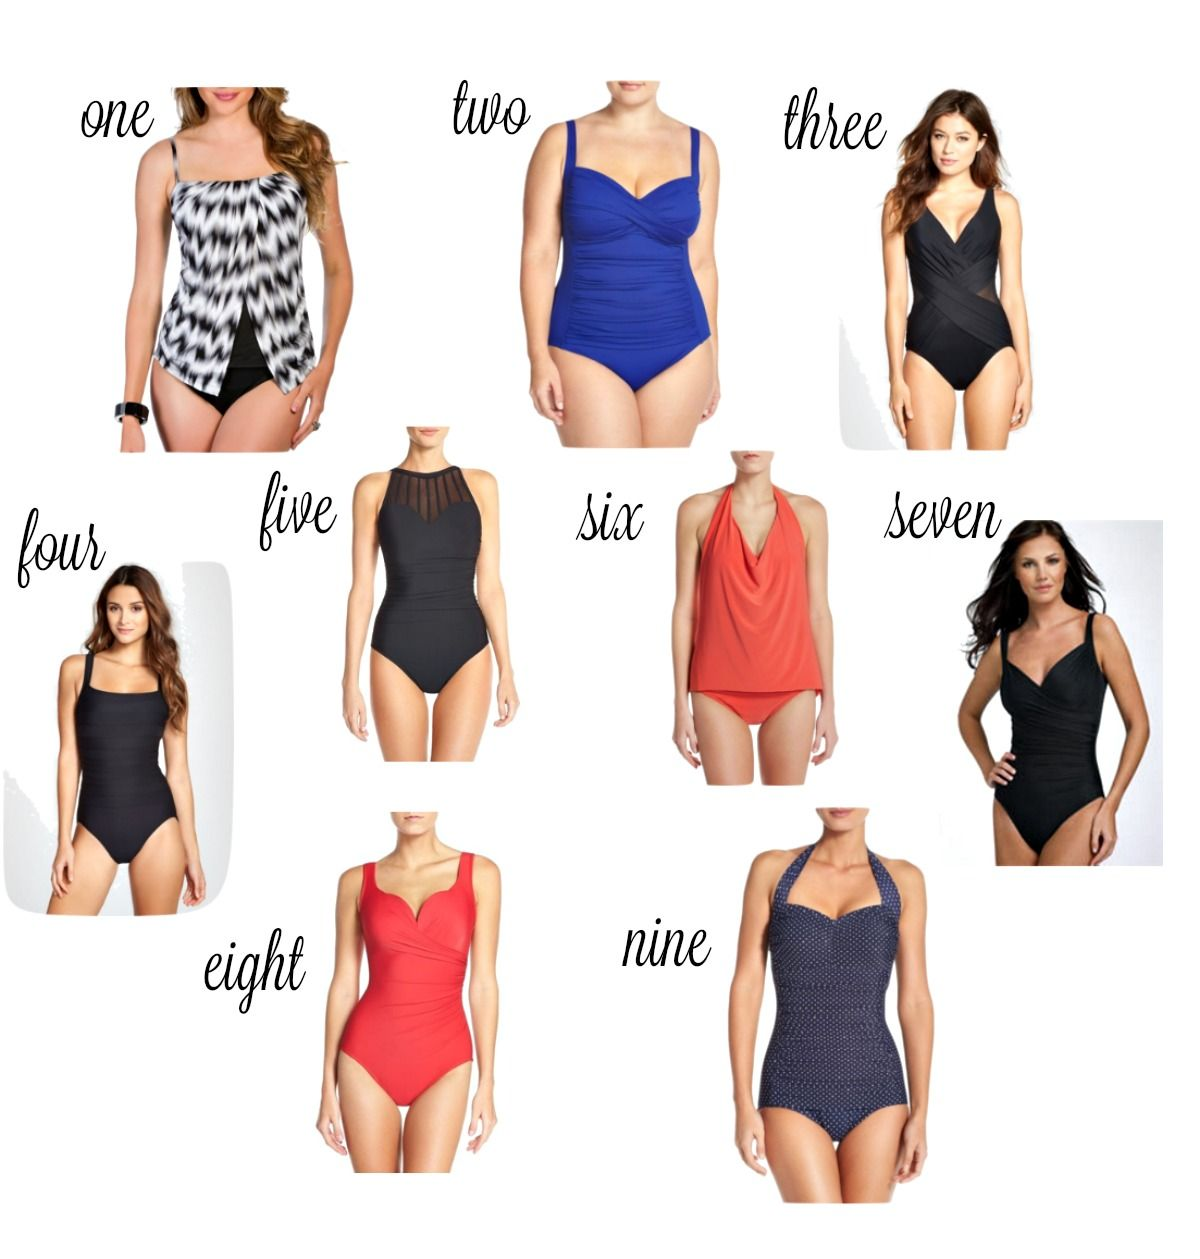 d6be11061cc ... your favorite! SWIMSUITS FOR EVERY BODY TYPE